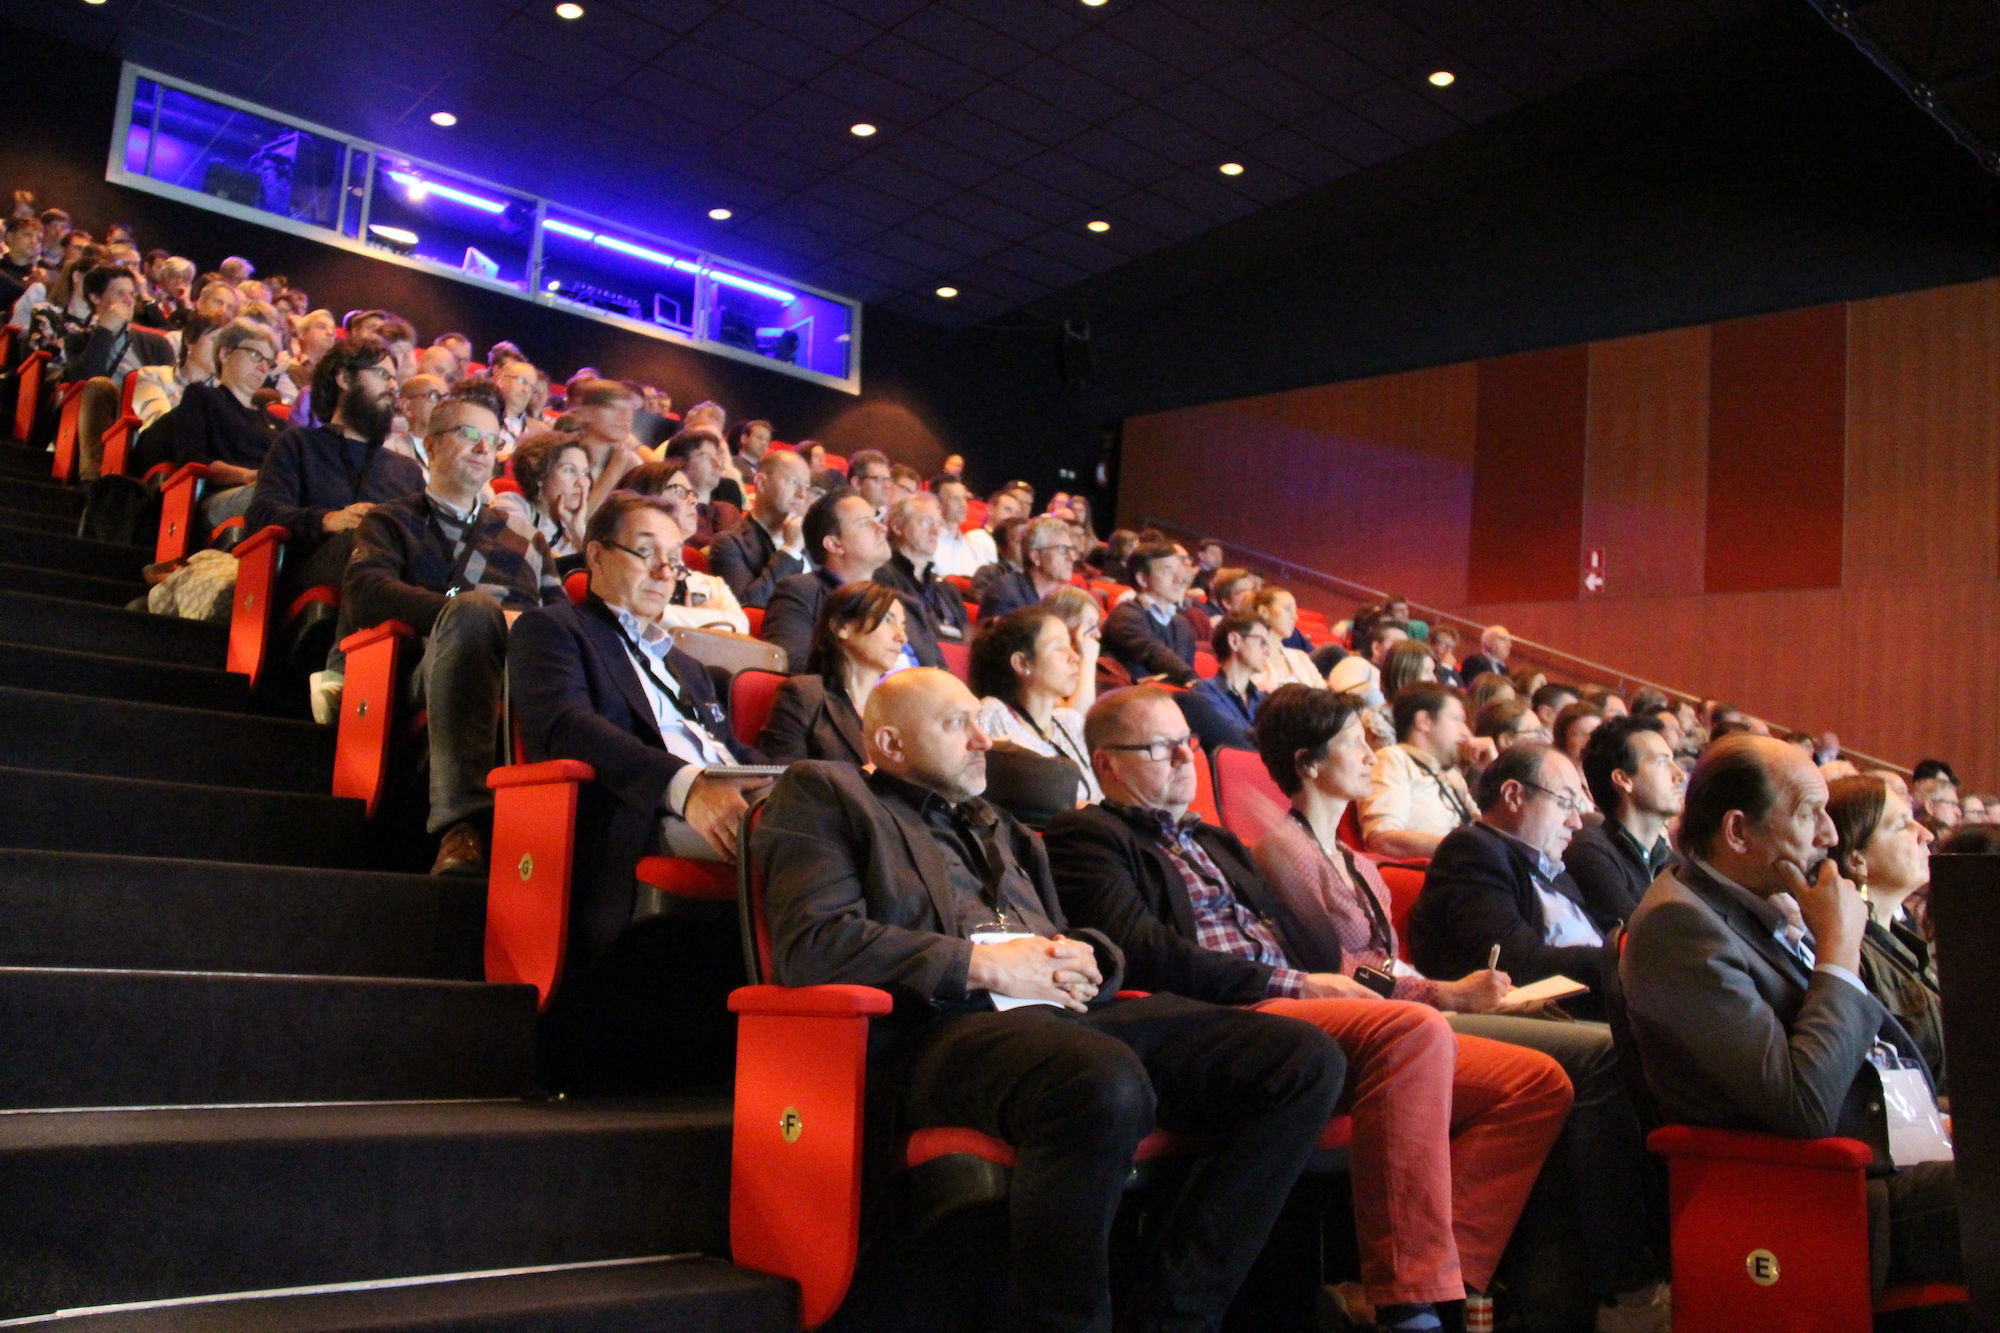 20180424_warmtecongres_VM_00176.JPG